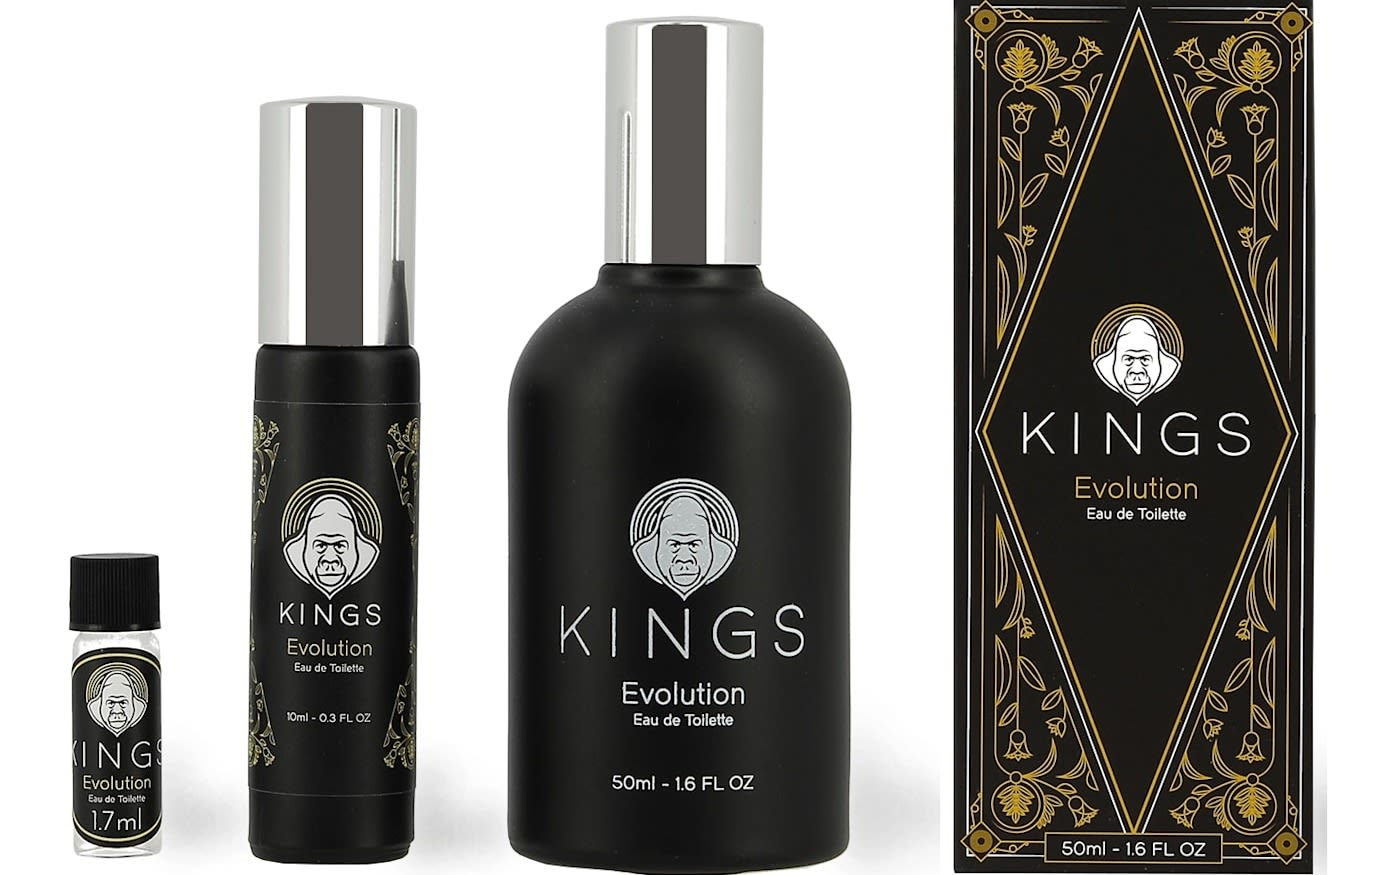 Four bottles of different Kings products lined up. The packaging is black, silver and gold